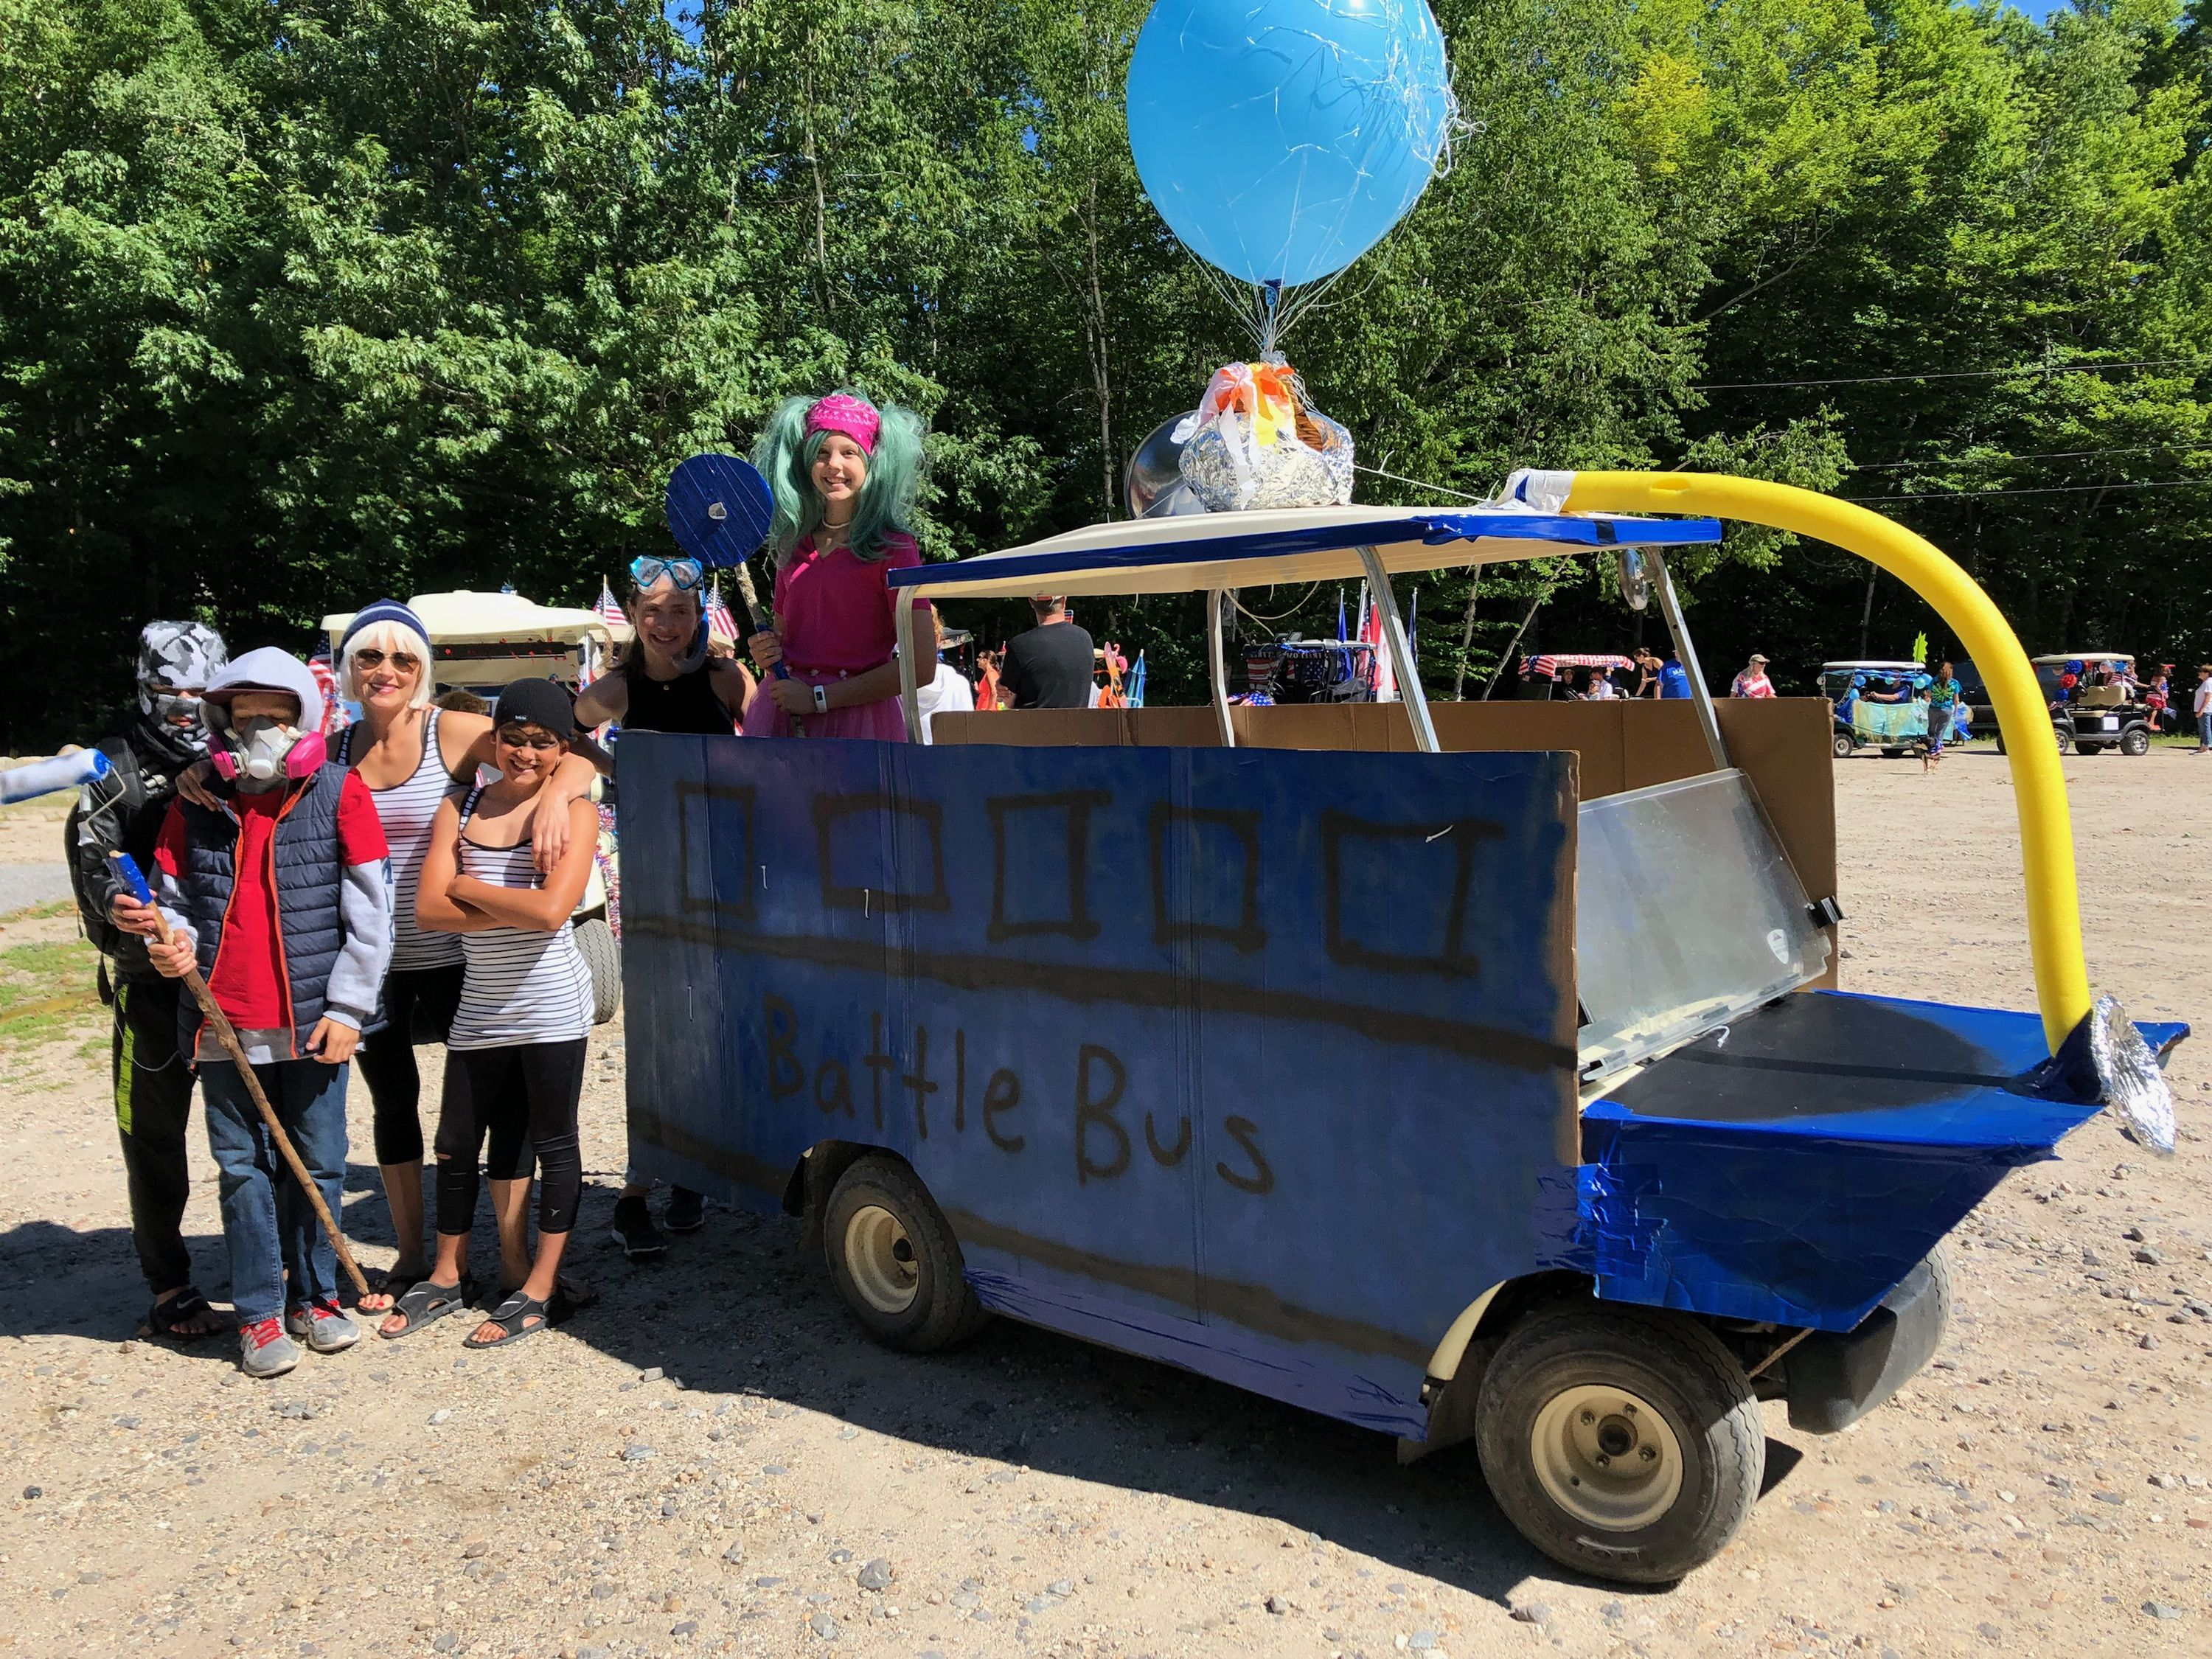 Fortnite Golf Cart parade float: Zoe, Abstract, Havoc, Snorkel Ops on floating golf game, floating golf hole, floating van, floating generator, floating tank, floating utv, floating golf green,